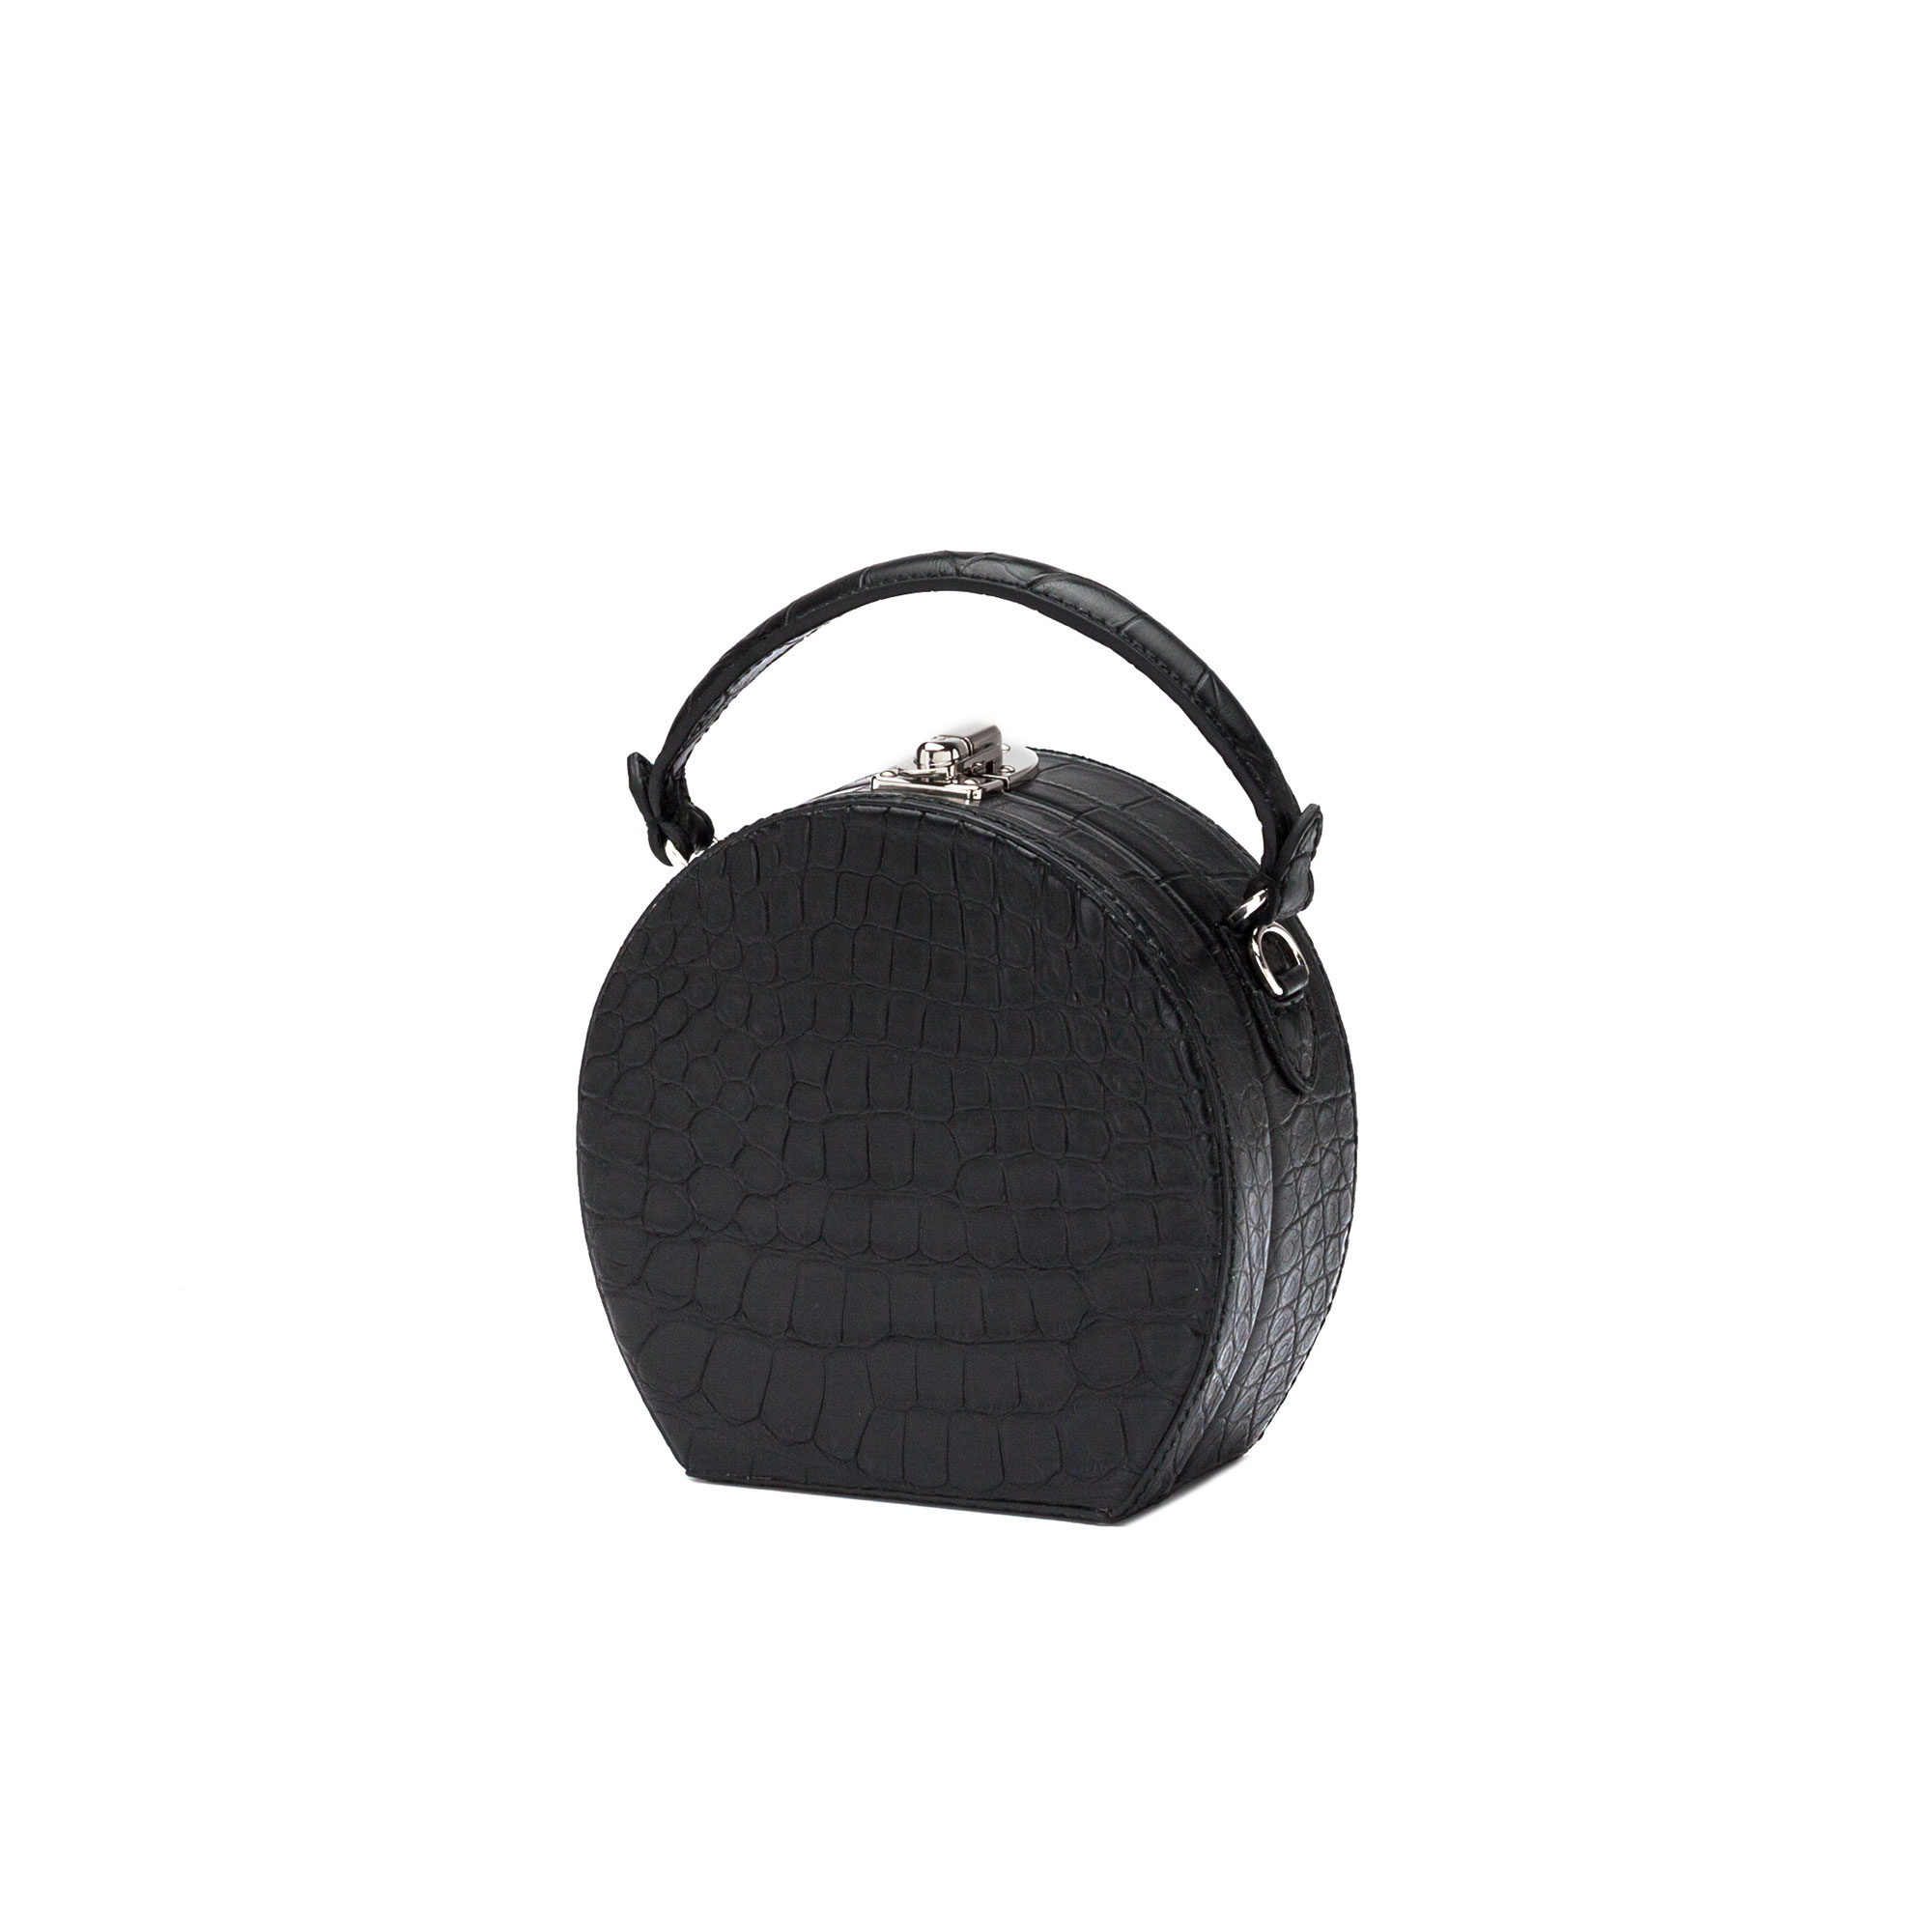 The black alligator Regular Bertoncina bag by Bertoni 1949 02